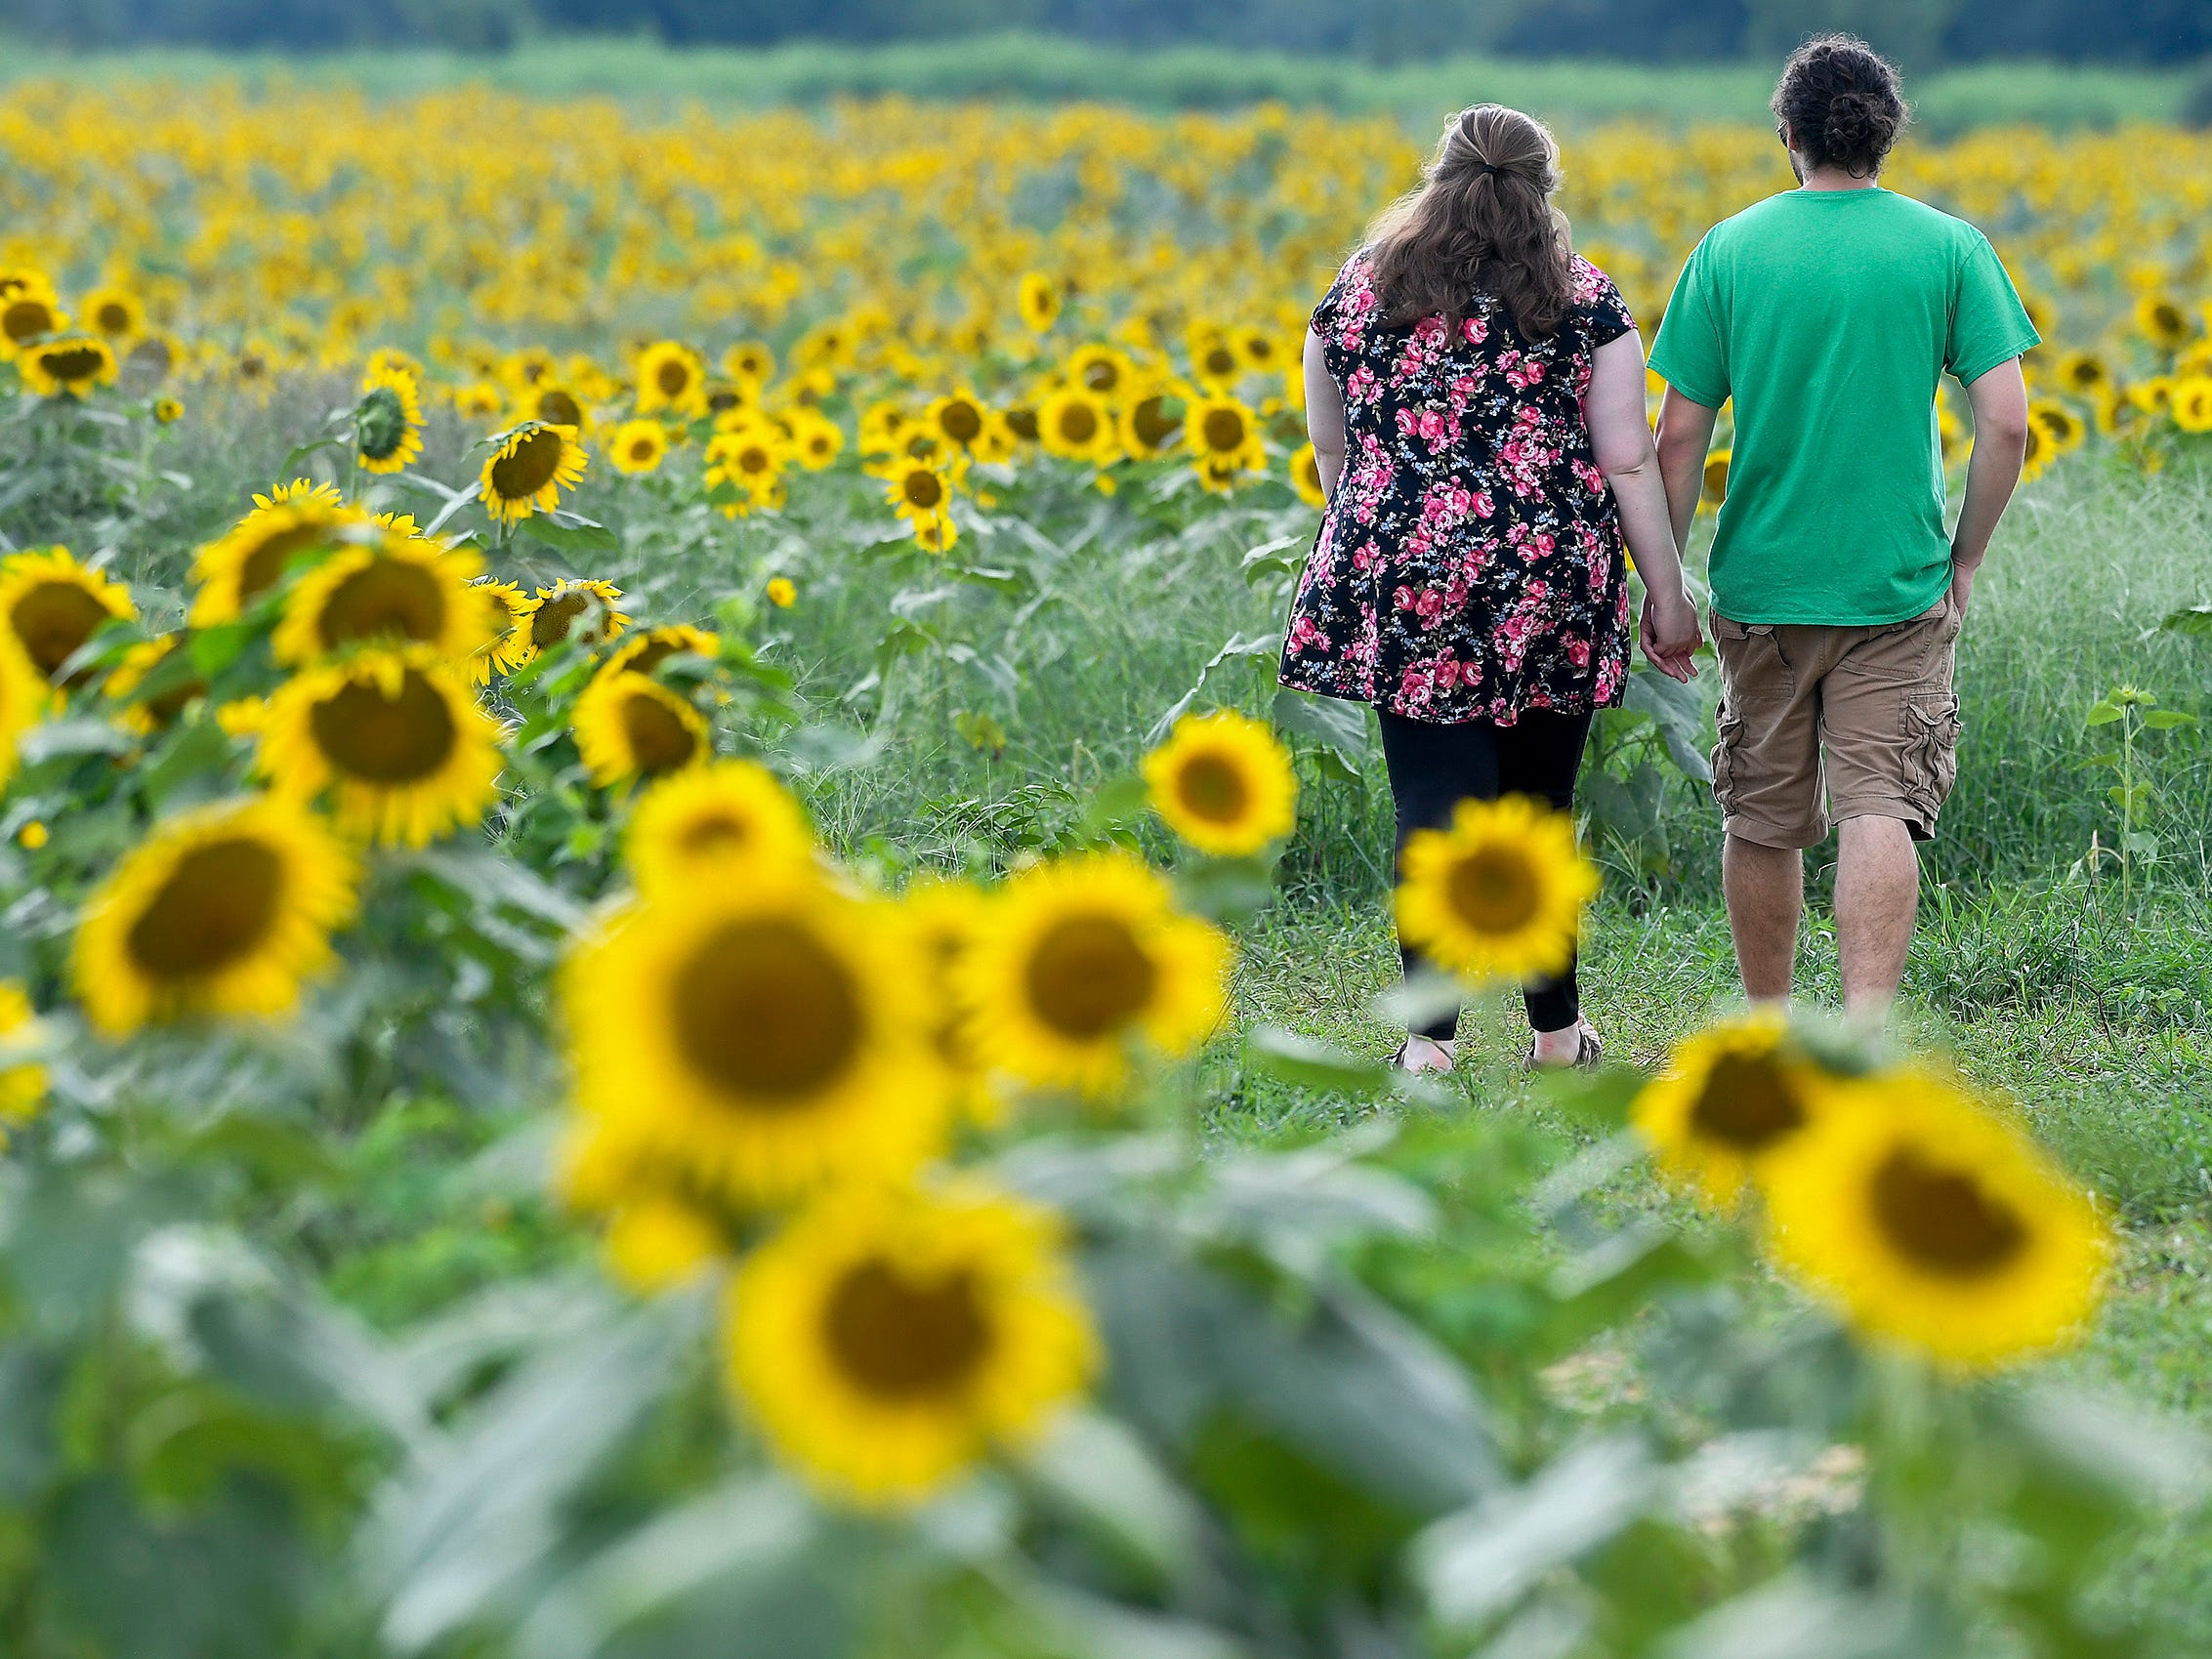 Rebekah Reeder, left, and Alex Cotton walk through the Sheridan family sunflower field about five miles west of Autaugaville, Ala. as the sunflowers bloom on Monday August 13, 2018.